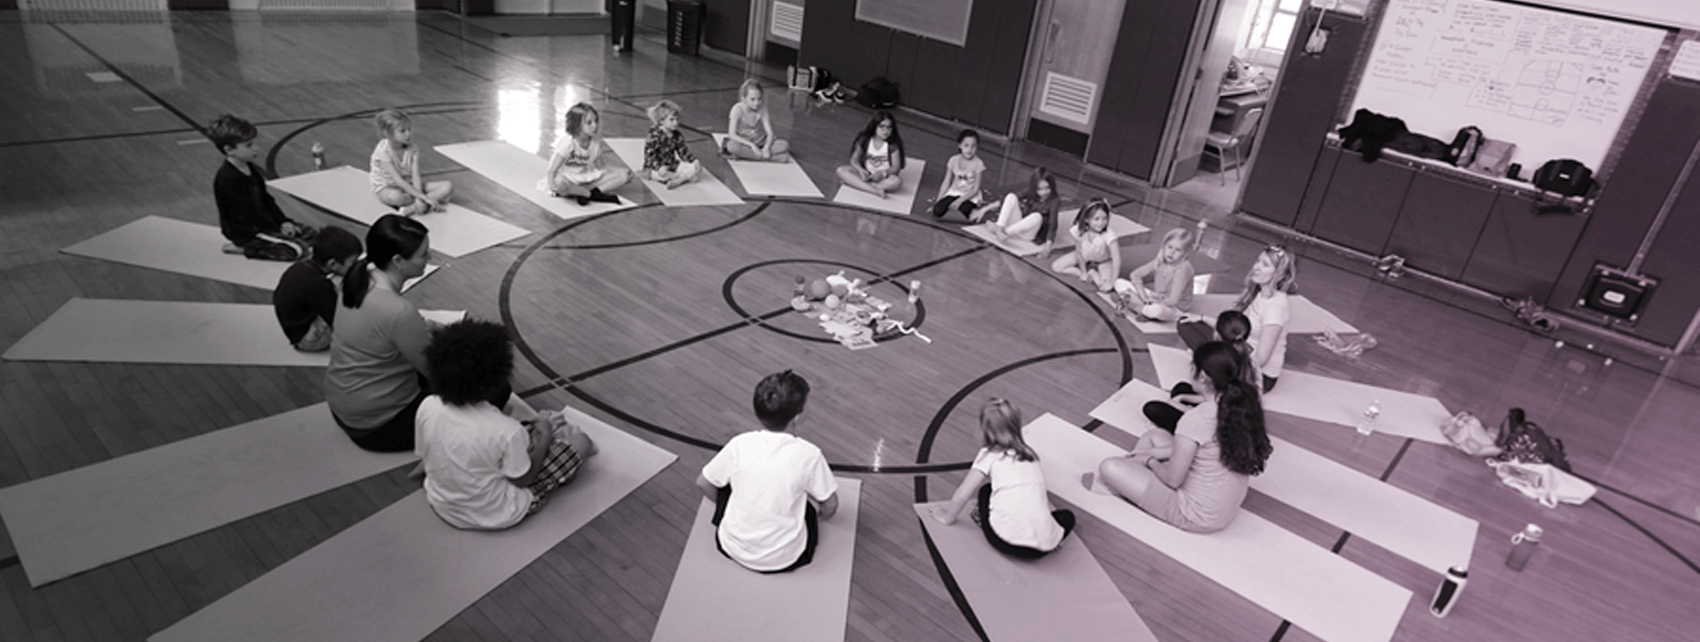 kids yoga denver